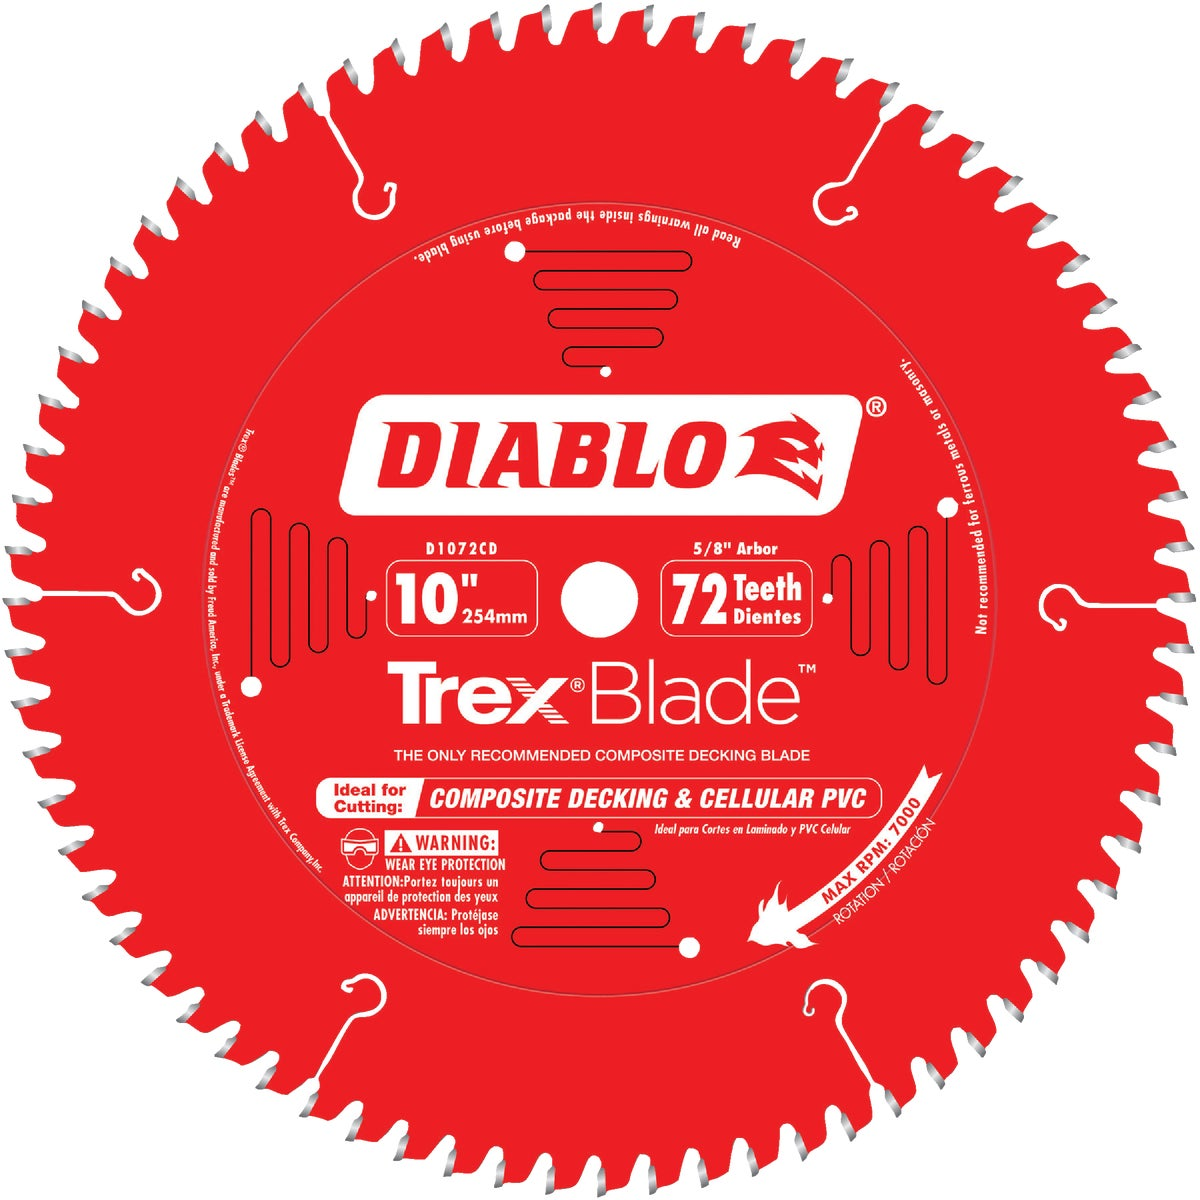 "10"" 72T COMP DECK BLADE - D1072CD by Freud Inc"